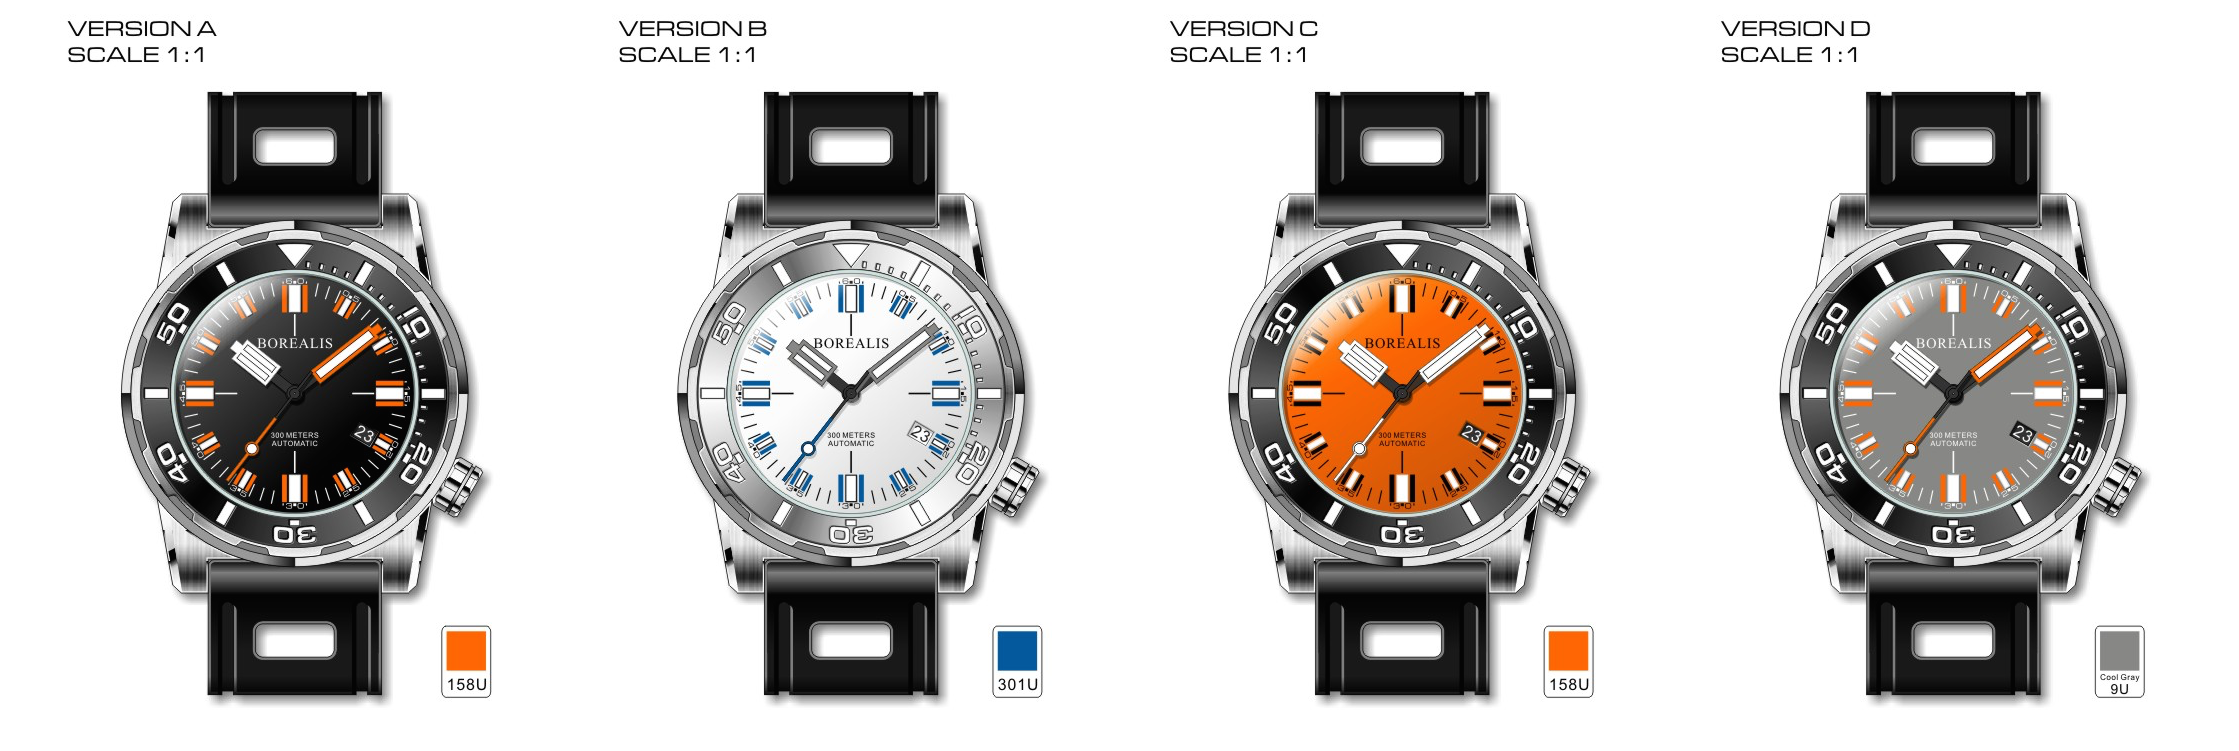 Borealis Sea Dragon Collection Miyota 9015 Diver Watch